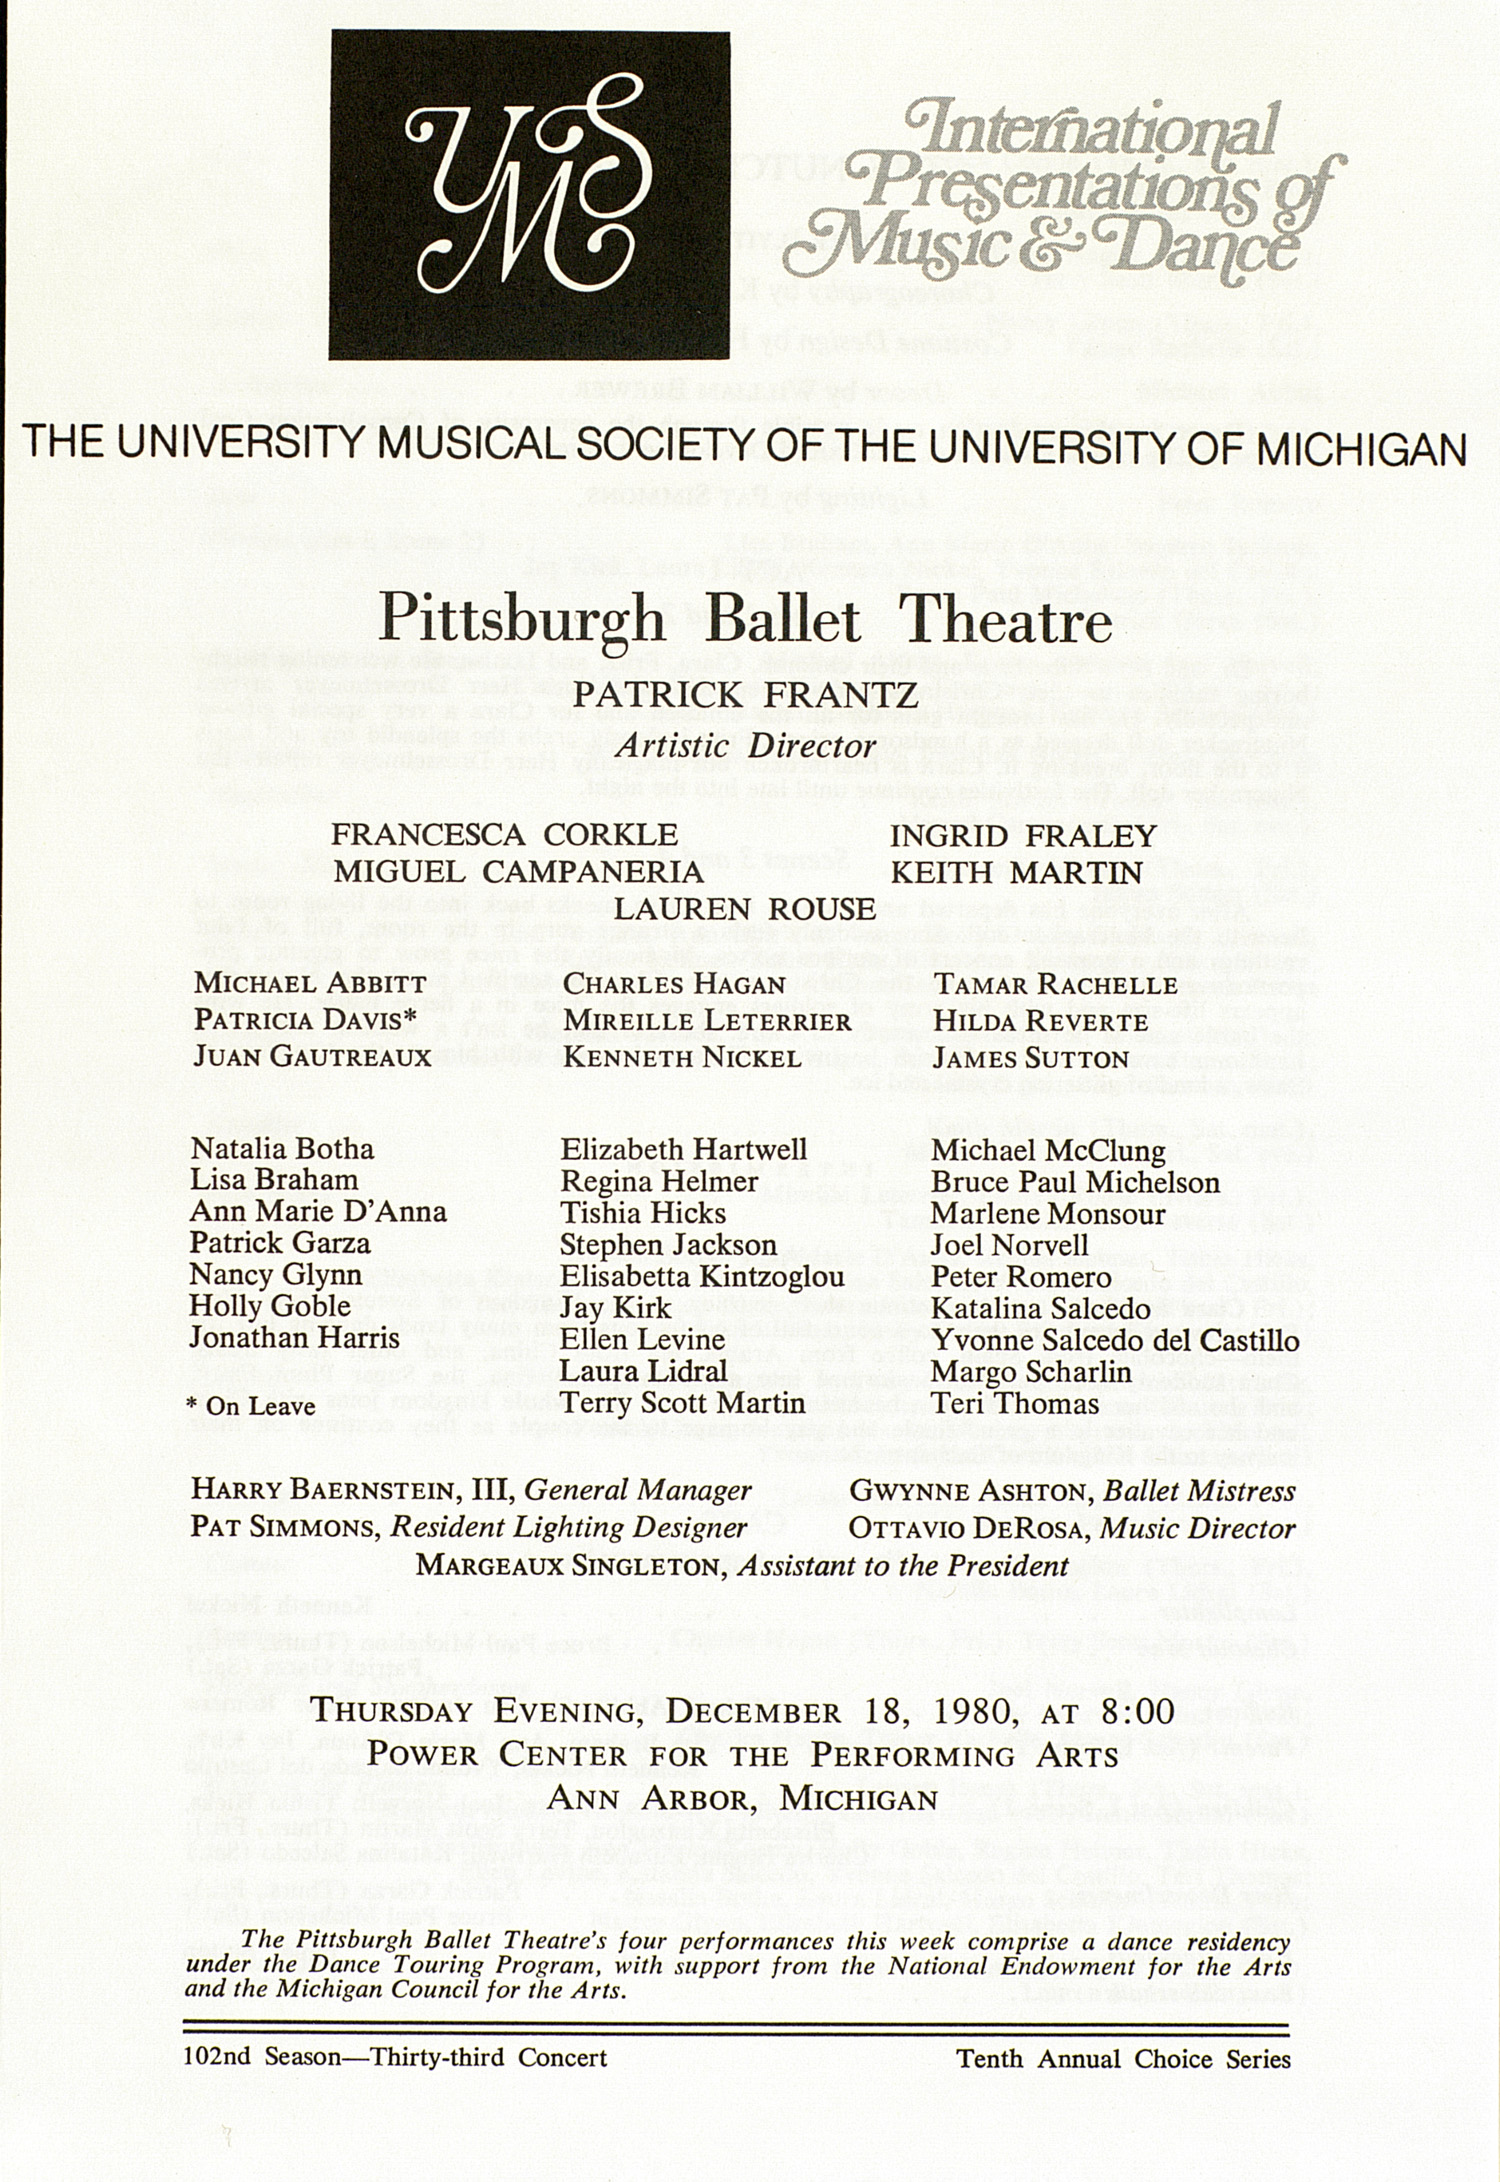 UMS Concert Program, December 18, 1980: International Presentations Of Music & Dance -- Pittsburgh Ballet Theatre image